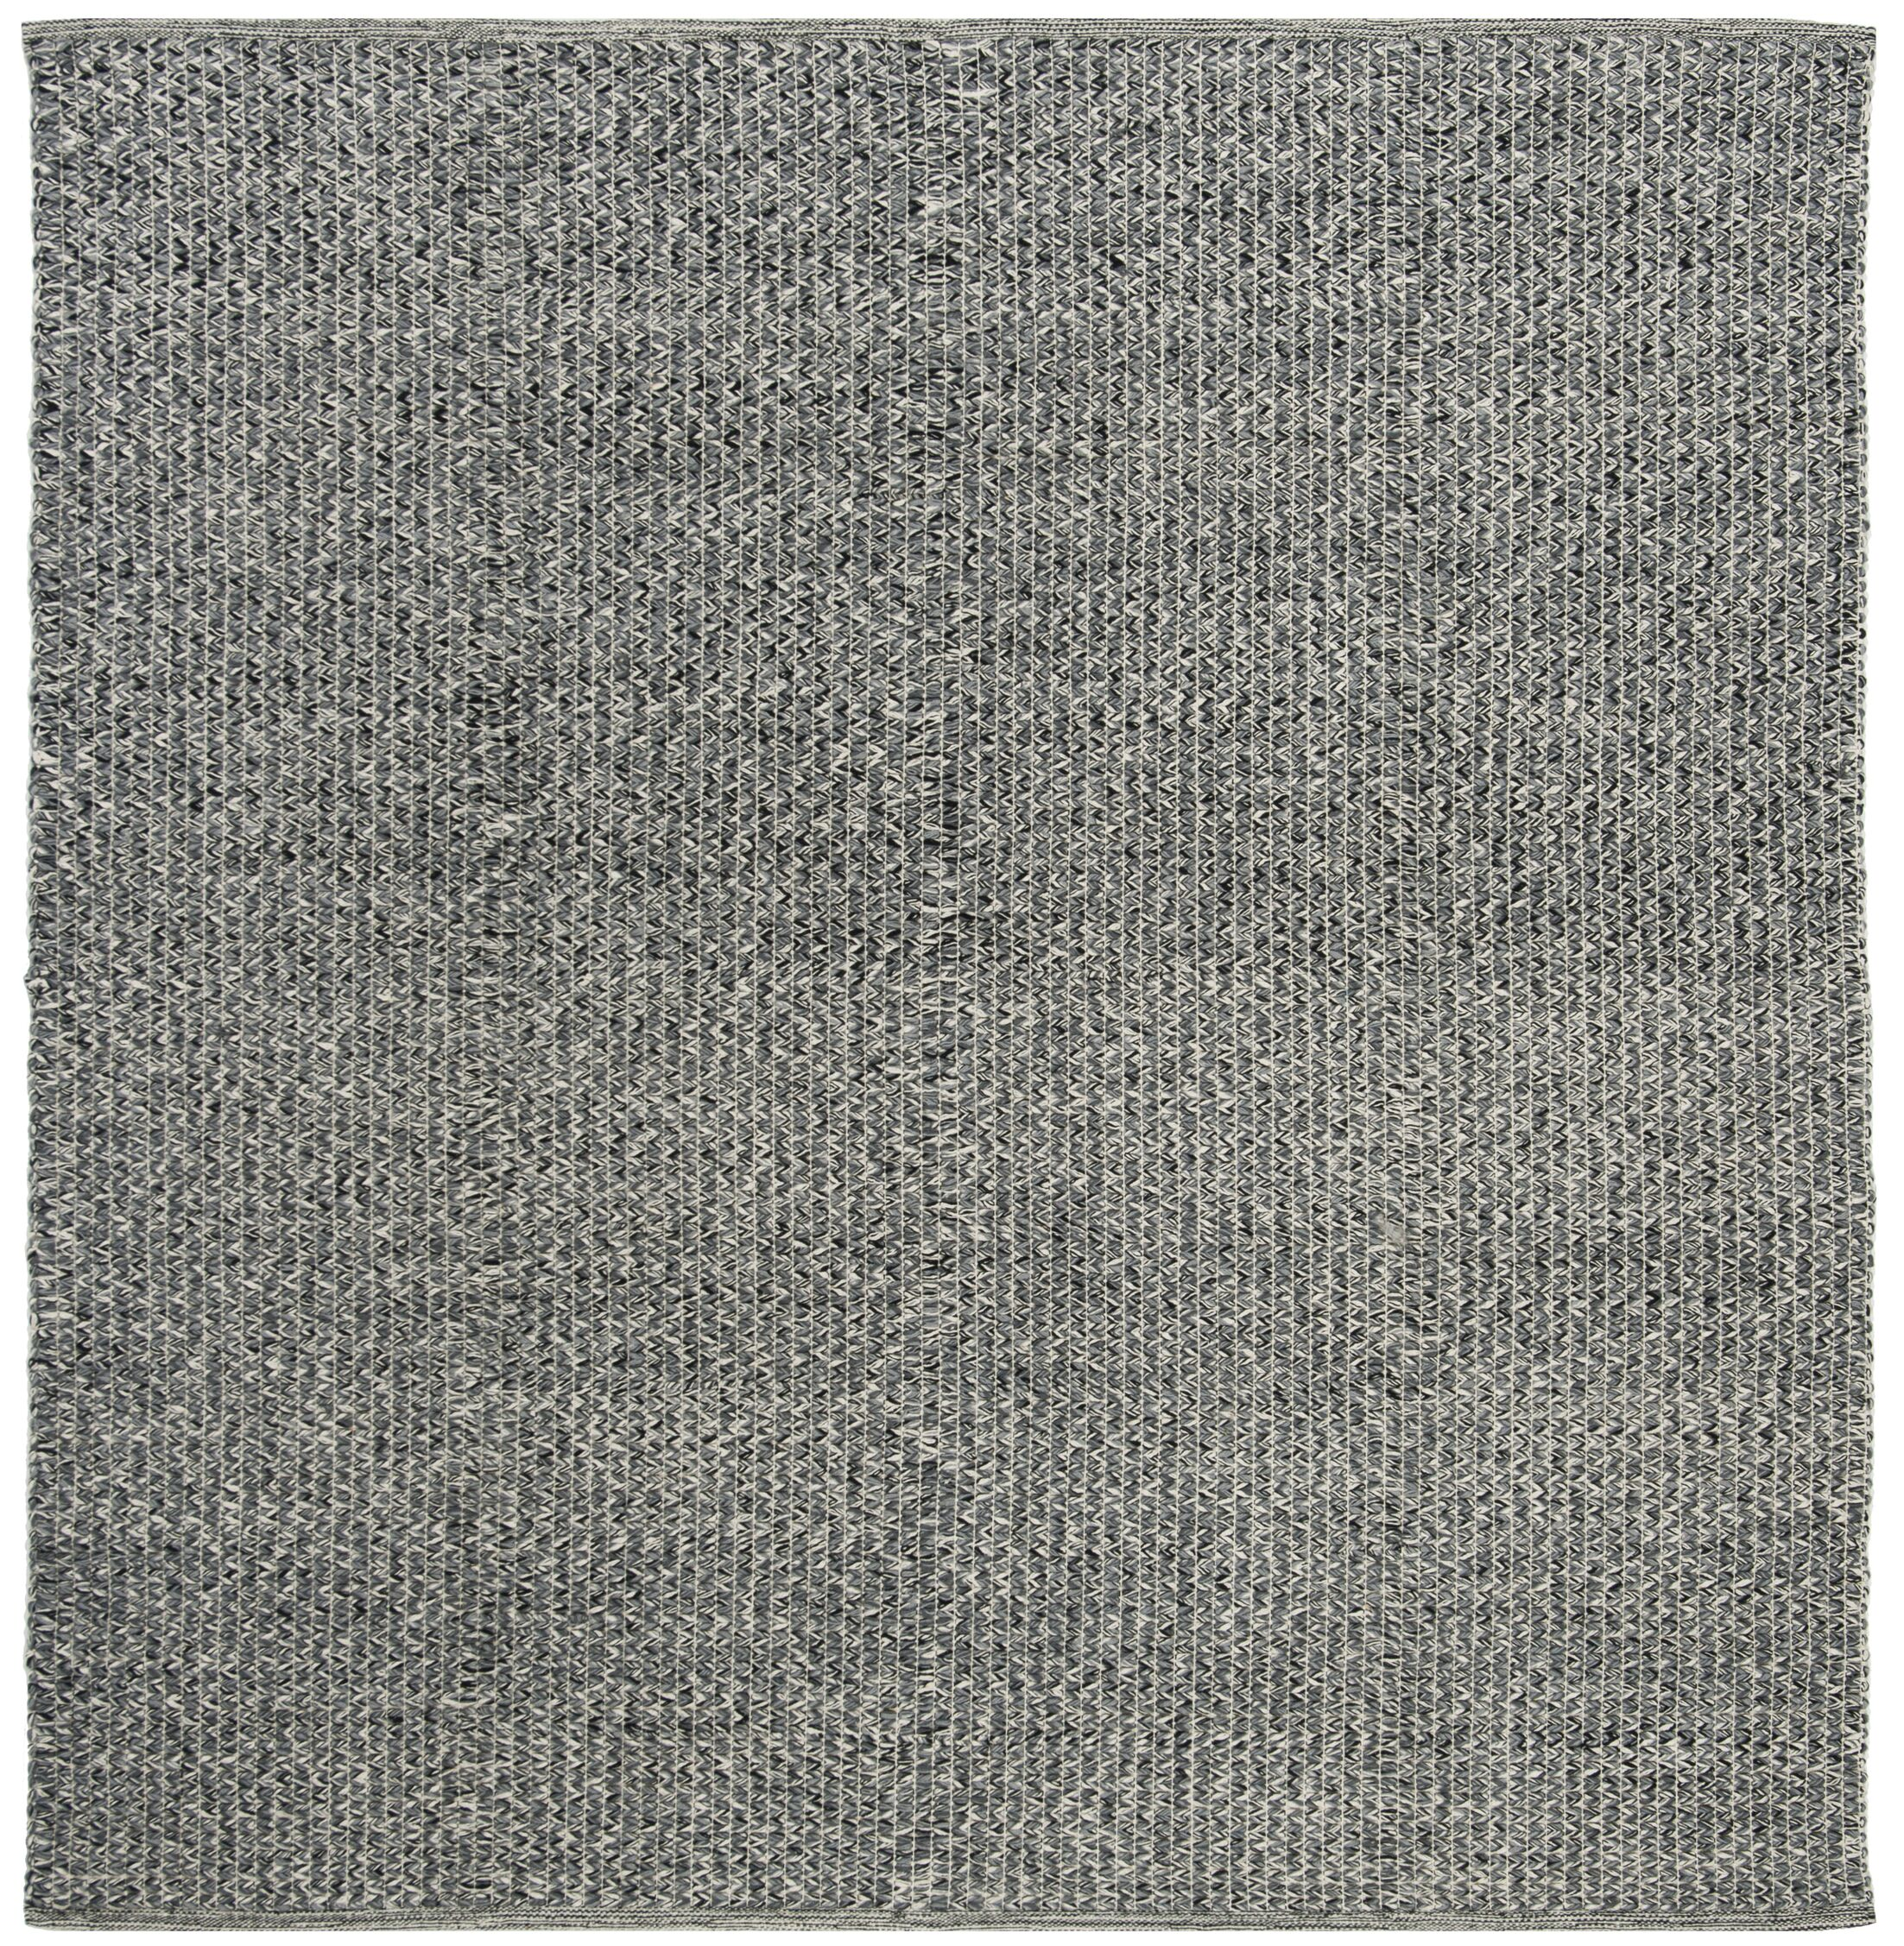 Shevchenko Place Hand-Woven Black/Gray Area Rug Rug Size: Square 6'